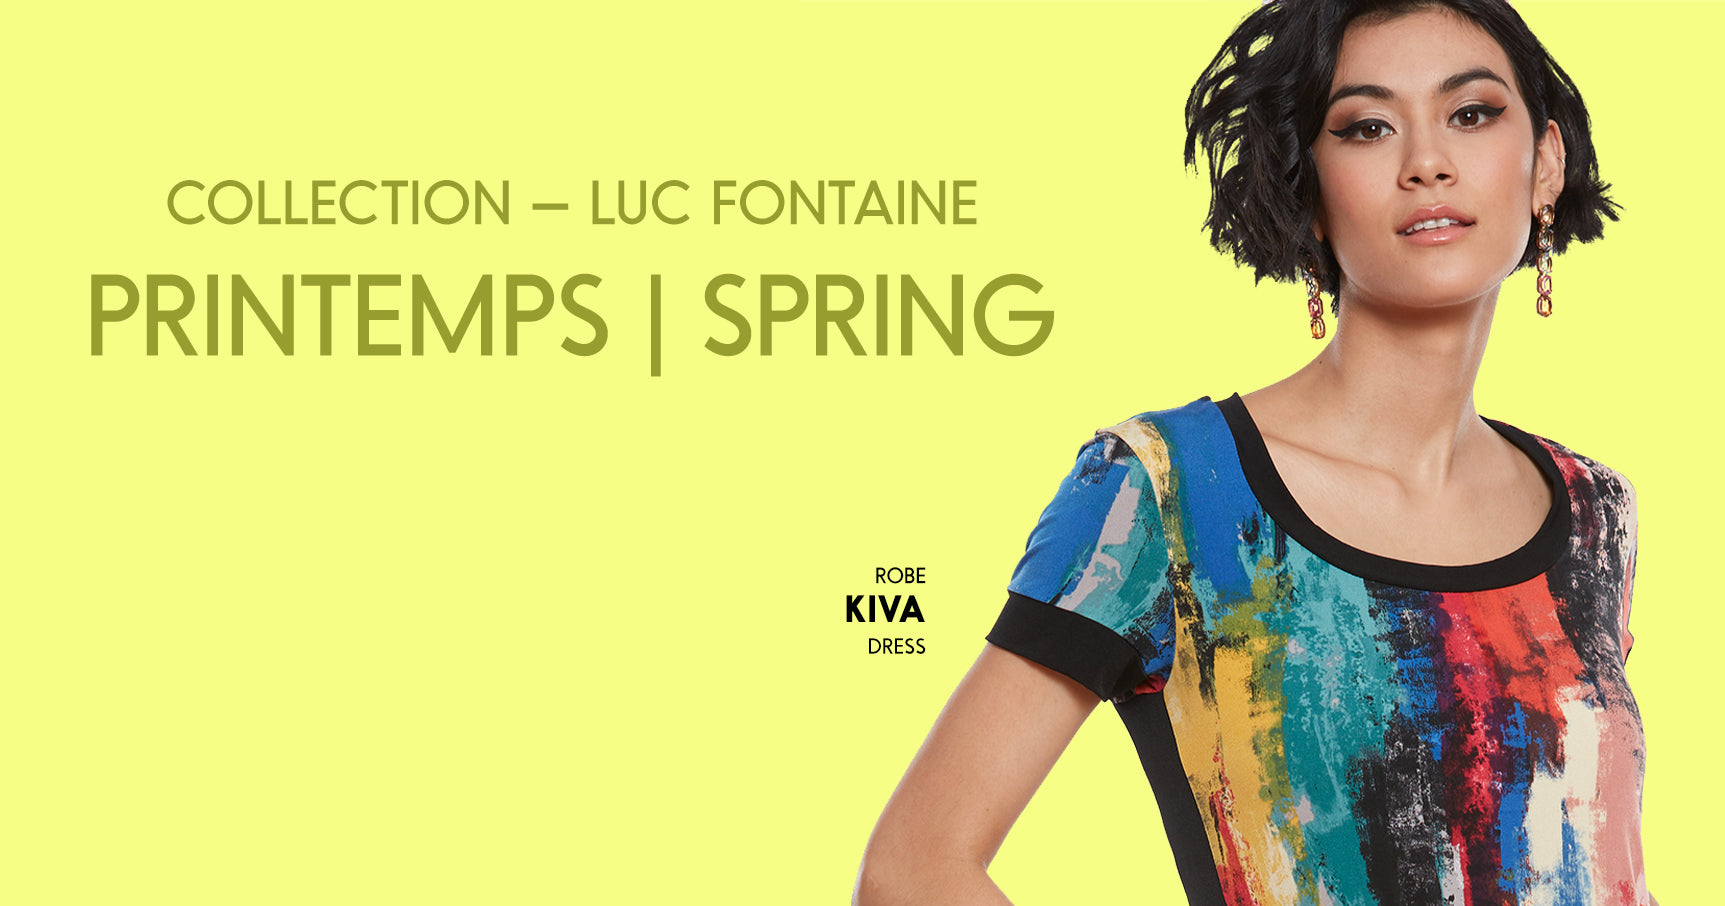 Collection Luc Fontaine | Spring - printemps